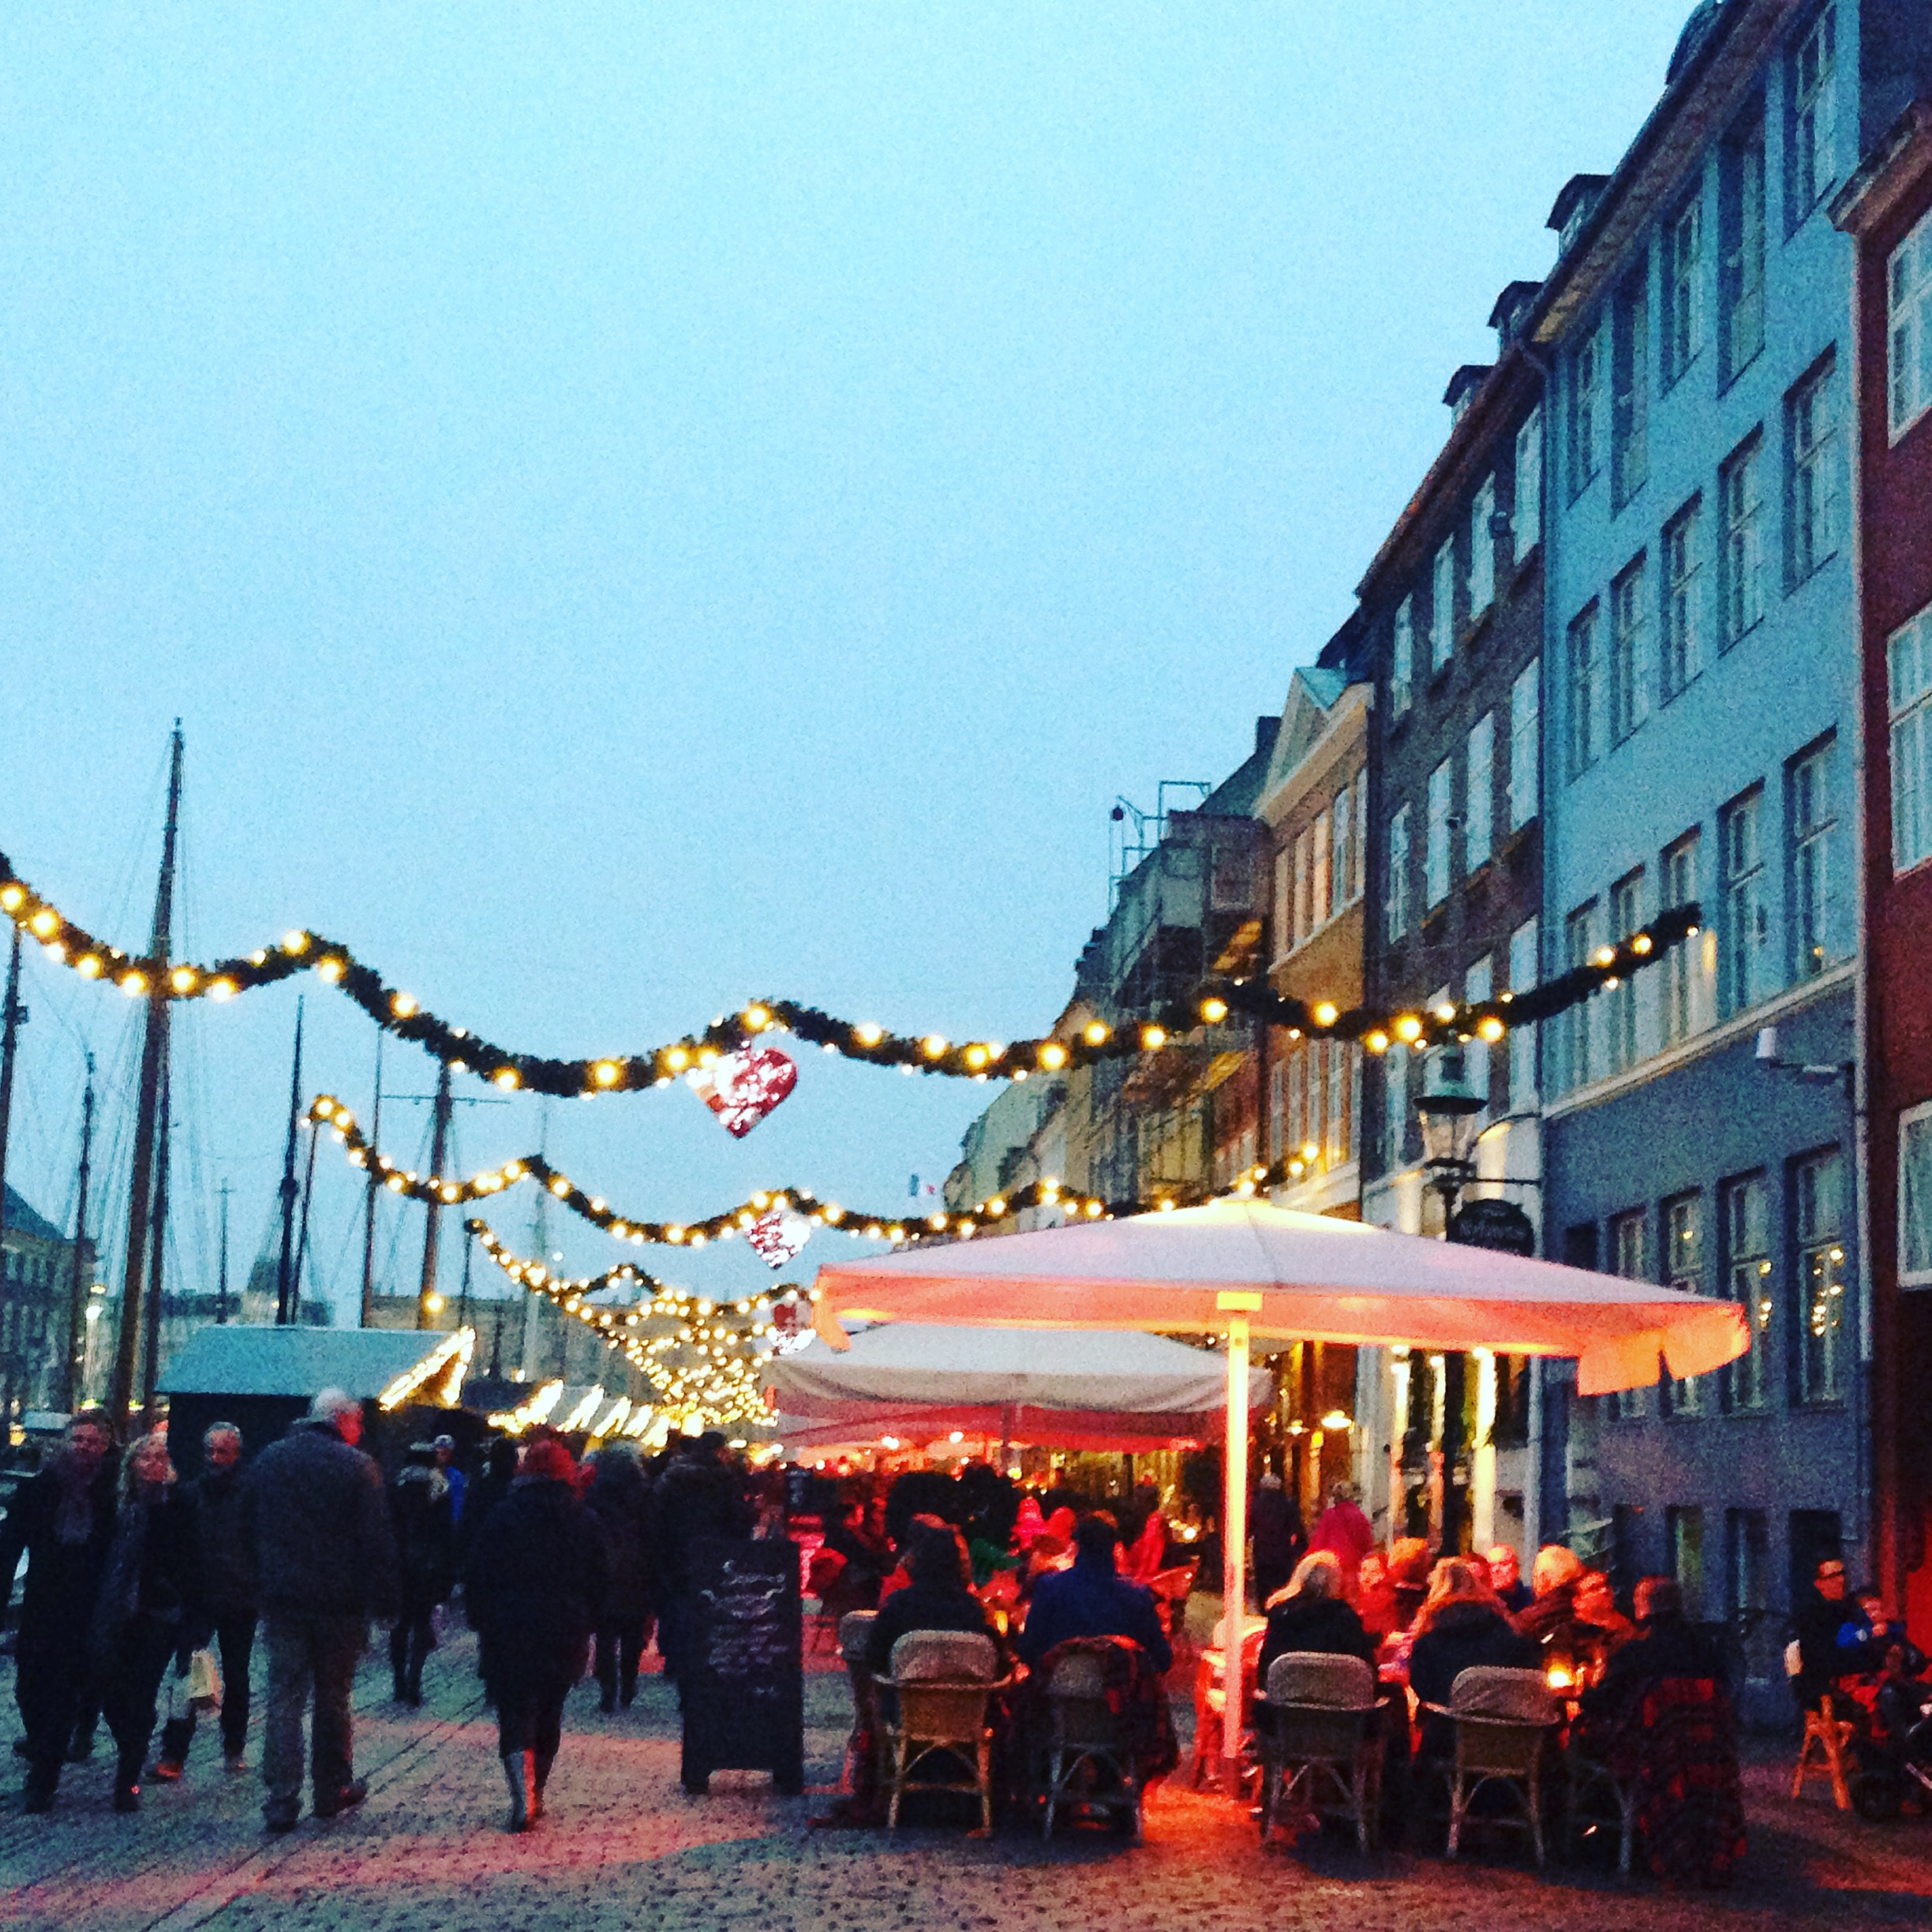 Copenhagen at Christmas- a picture from our honeymoon I felt was pure hygge